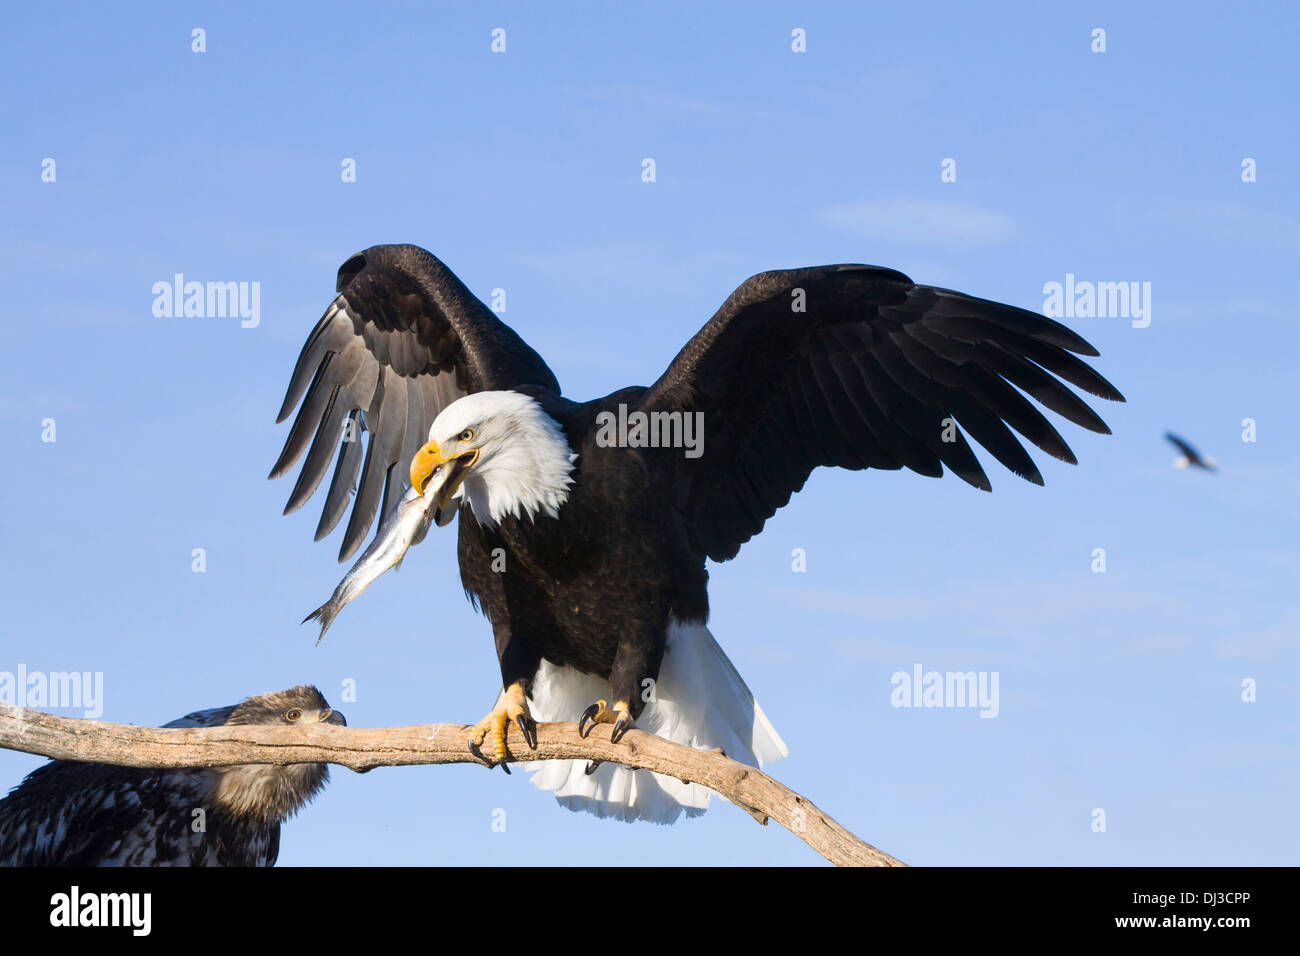 bald eagle perched on driftwood holding a fish in its beak near